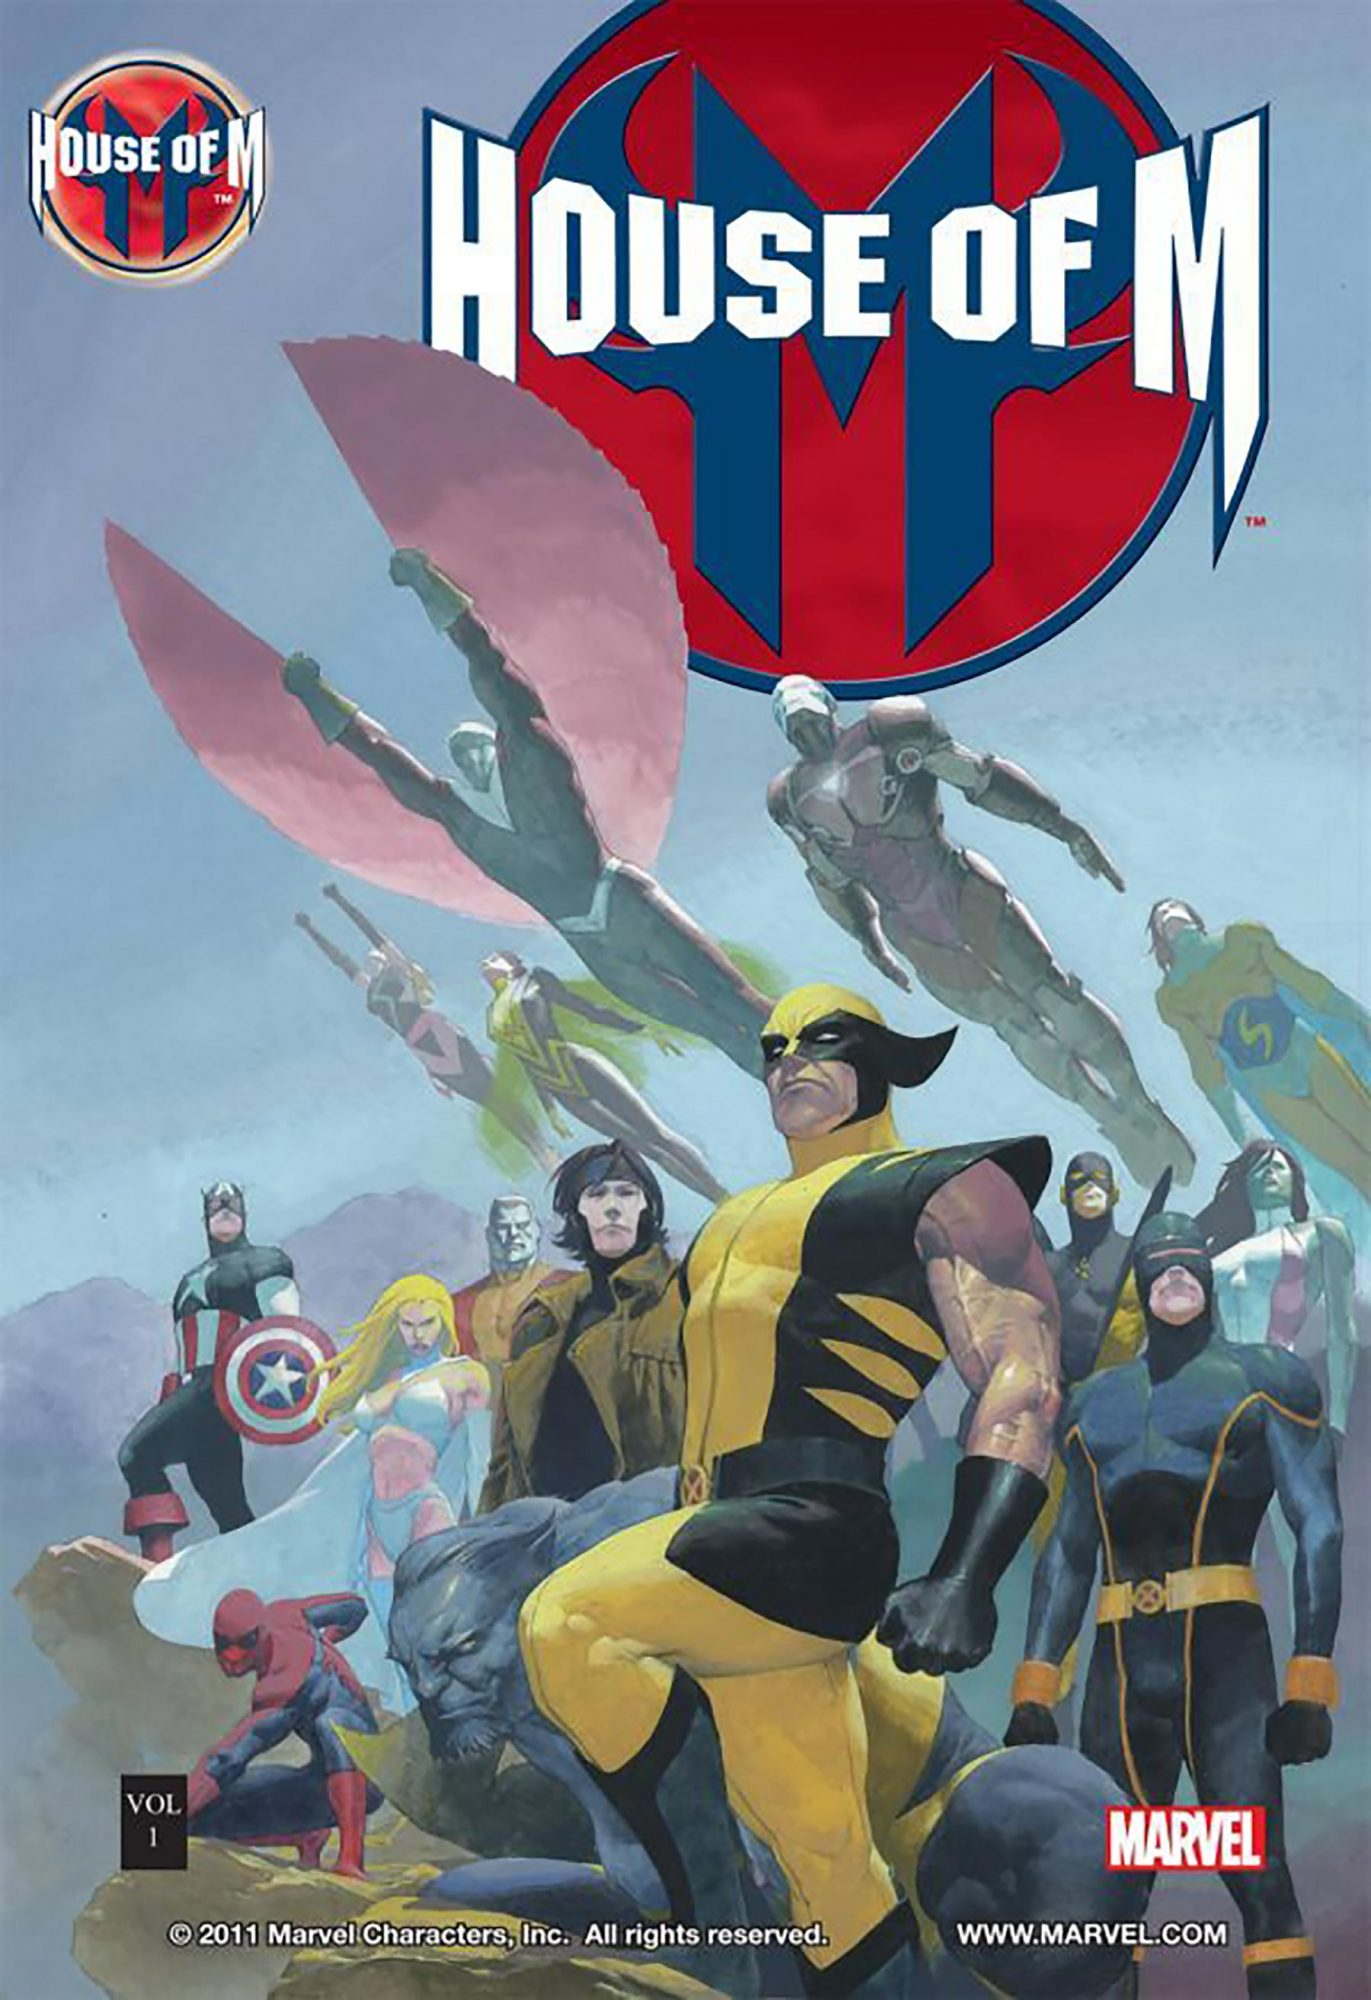 House of M CR: Marvel Comics